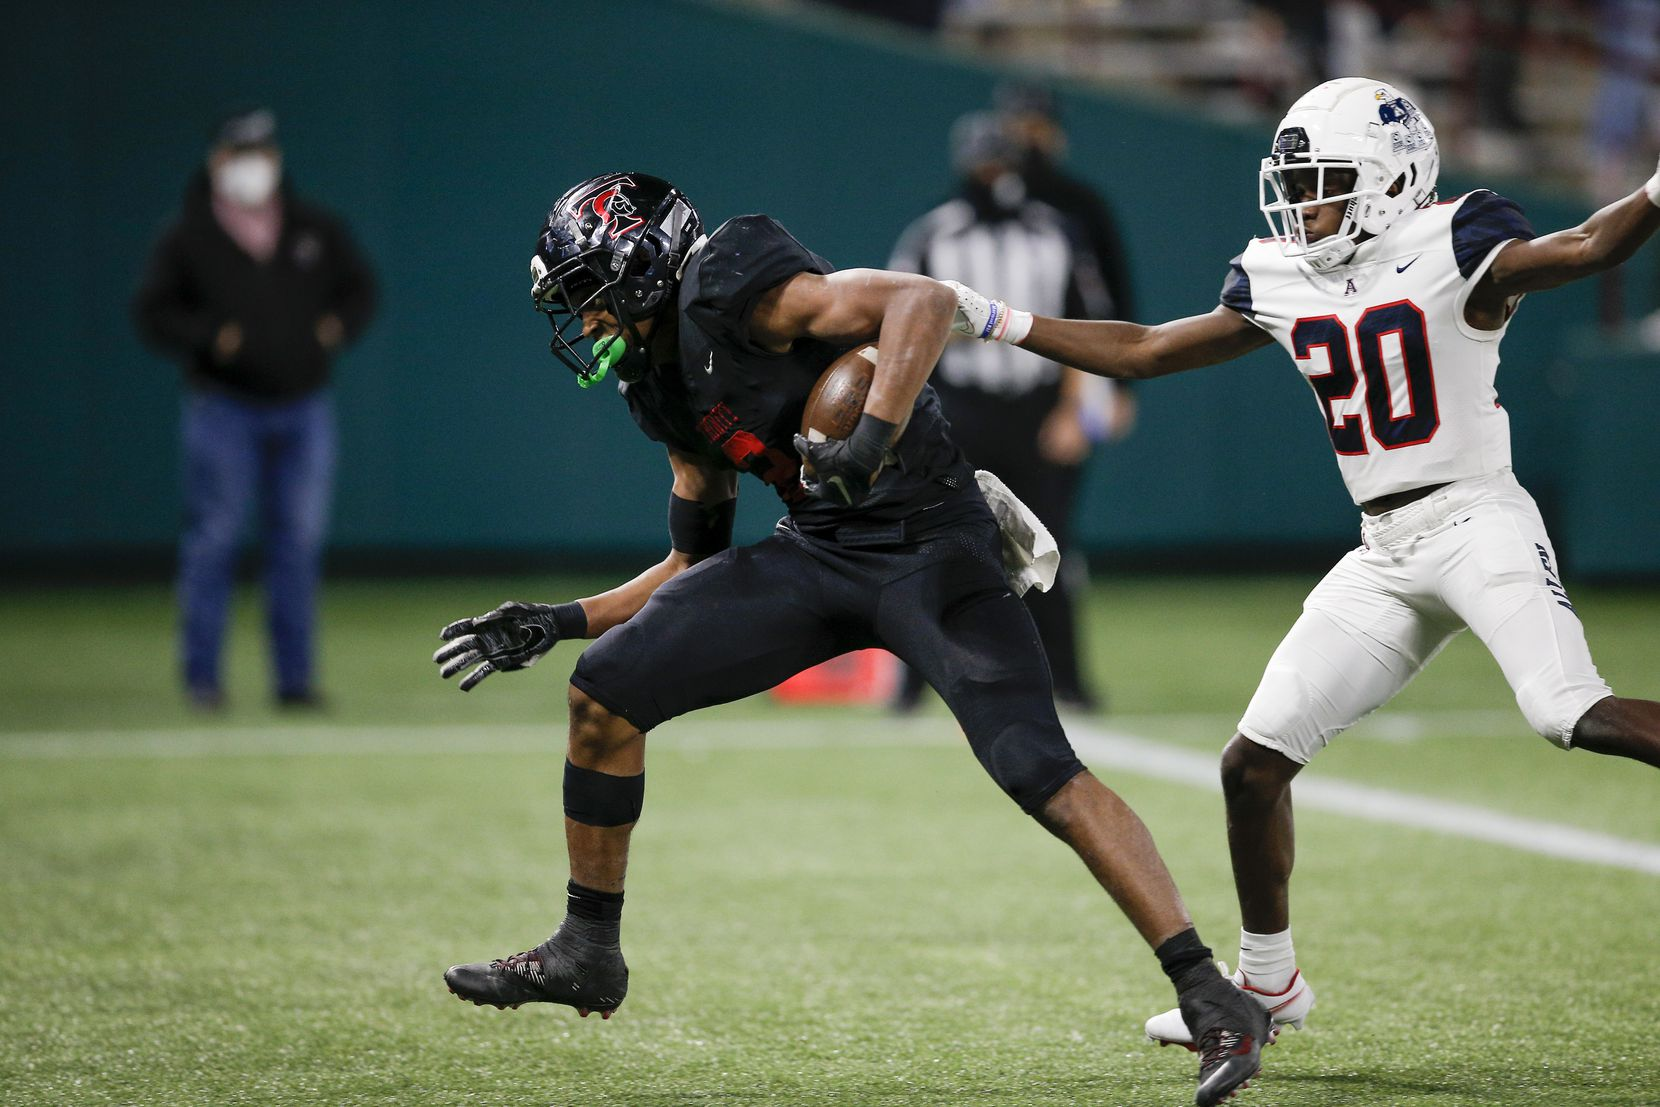 Euless Trinity junior running back Ollie Gordon (2) breaks past Allen junior defense back Sign Shuva (20) to score a touchdown during the second half of a high school Class 6A Division I Region I semifinal football game at Globe Life Park in Arlington, Saturday, December 26, 2020. Trinity won 49-45. (Brandon Wade/Special Contributor)